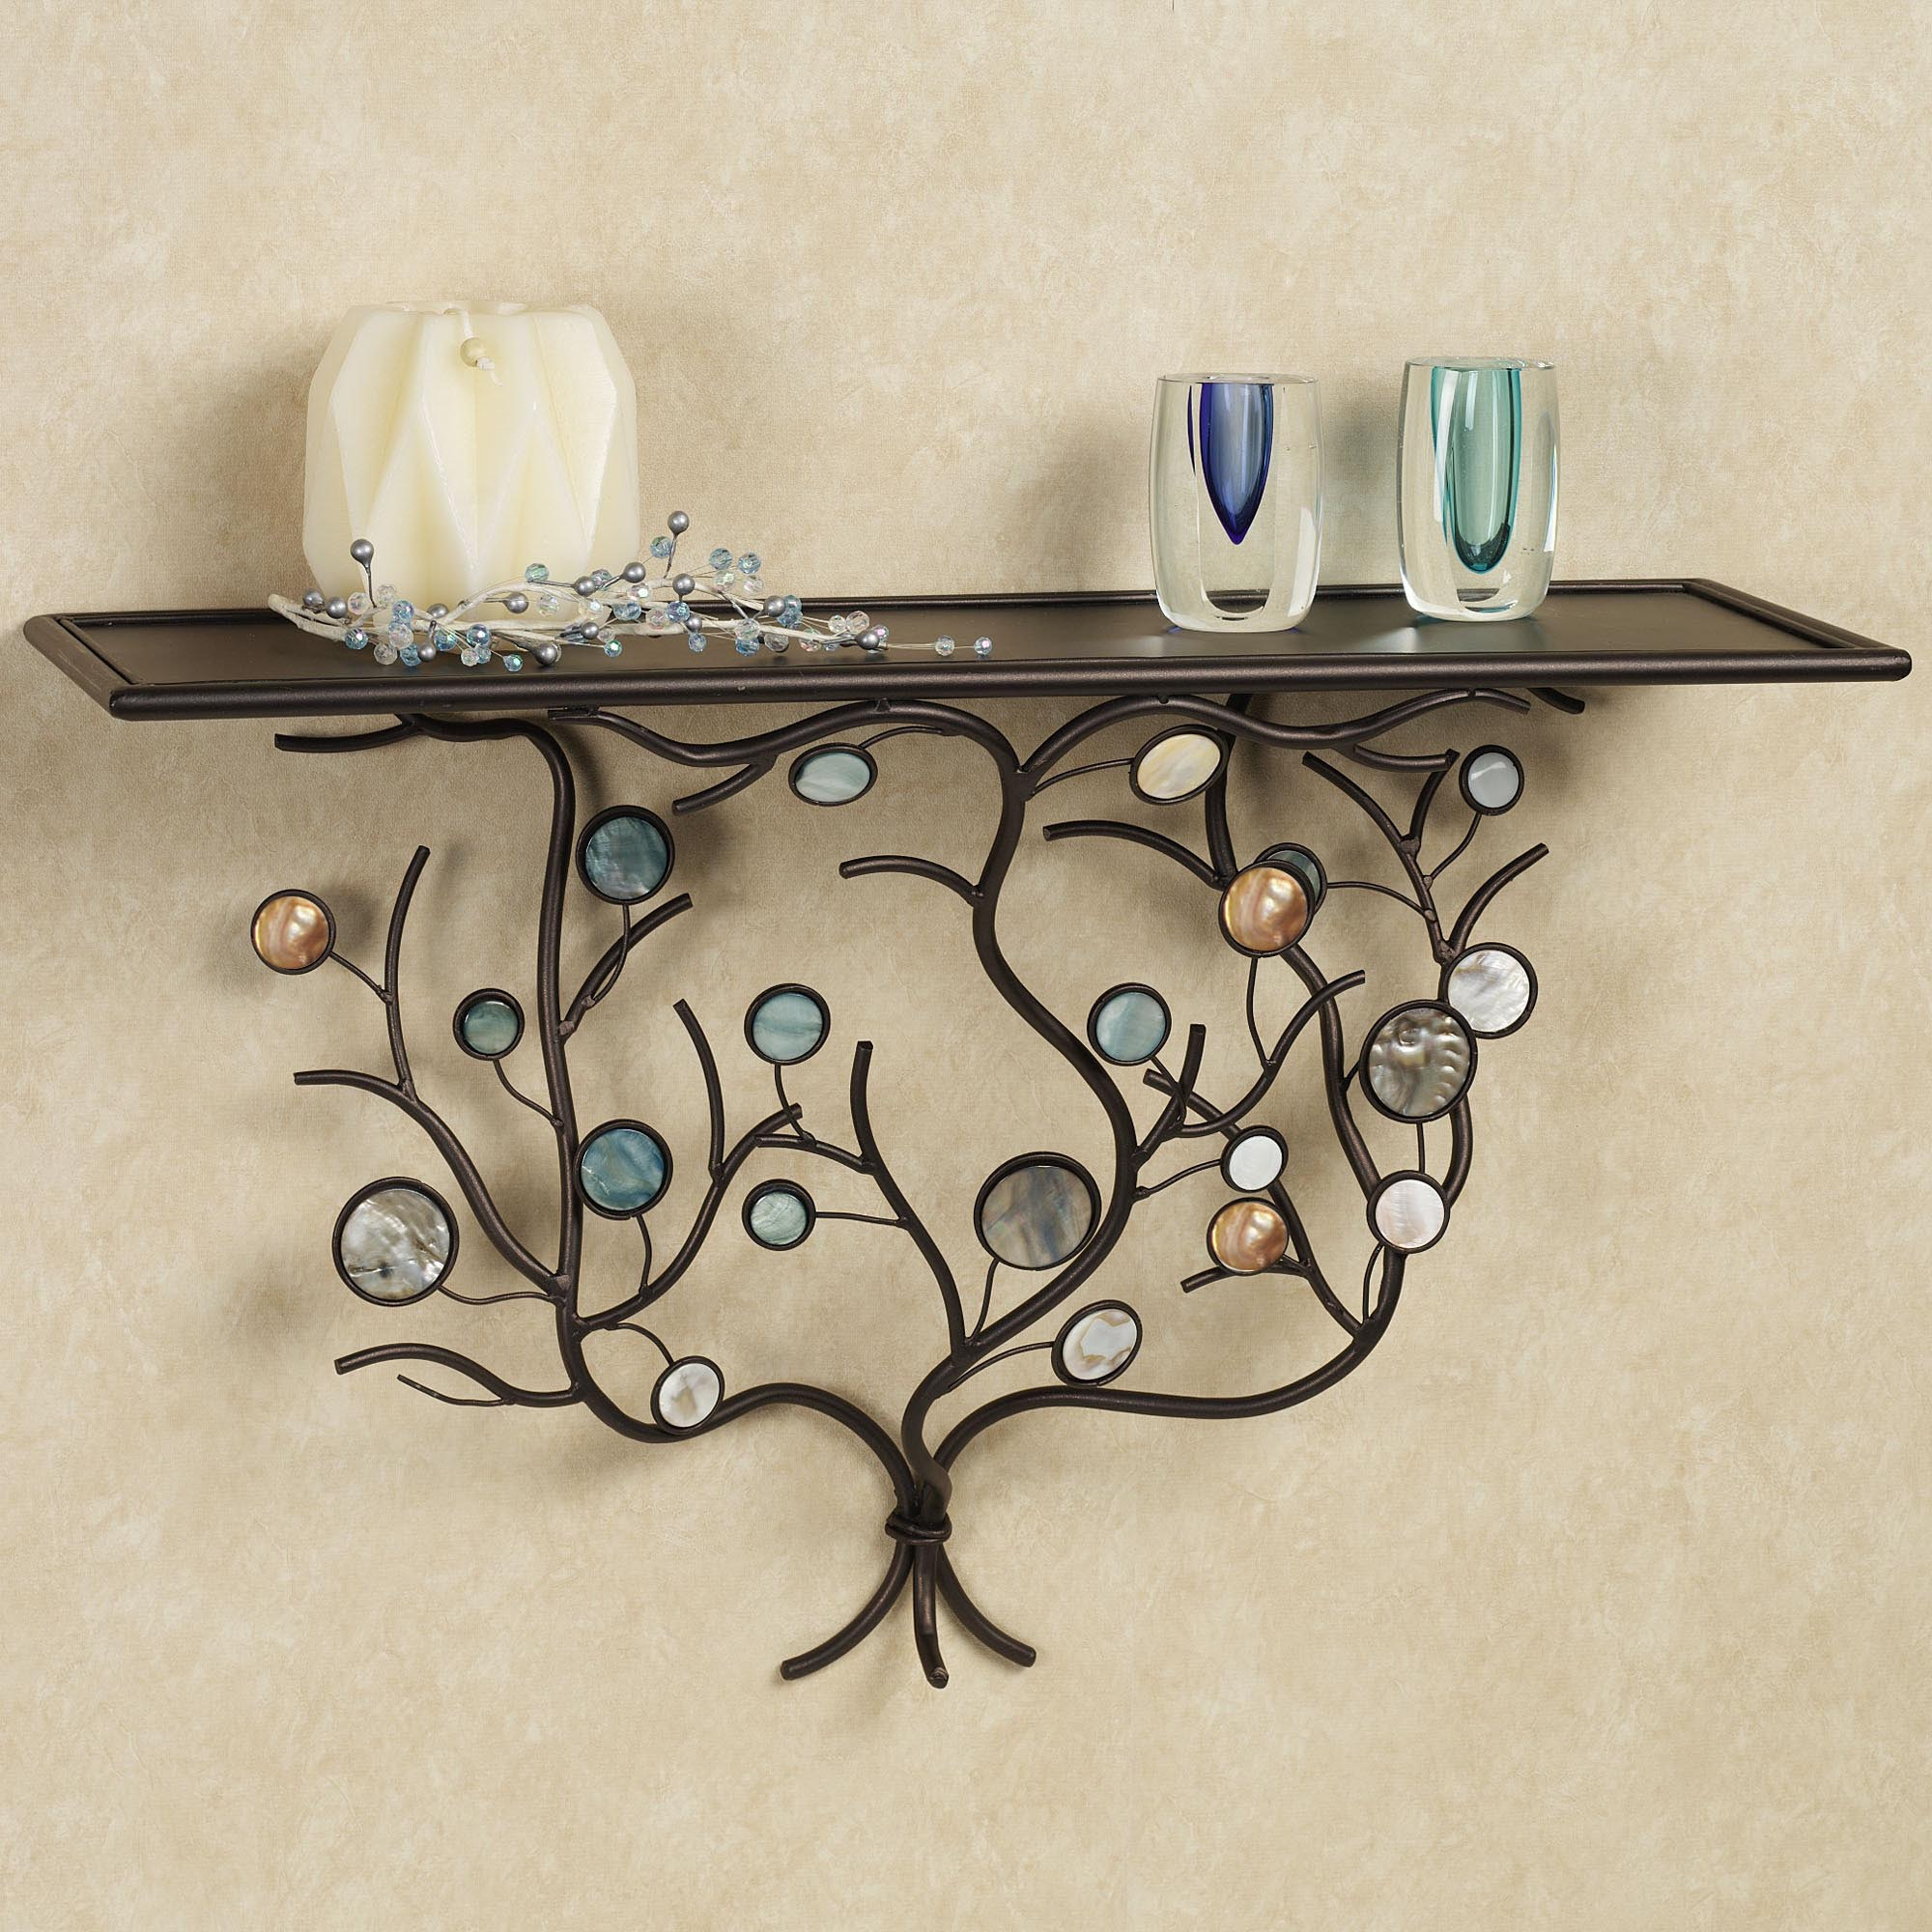 Unique Wall Shelf Decorative Wall Shelves Ideas Best Decor Things